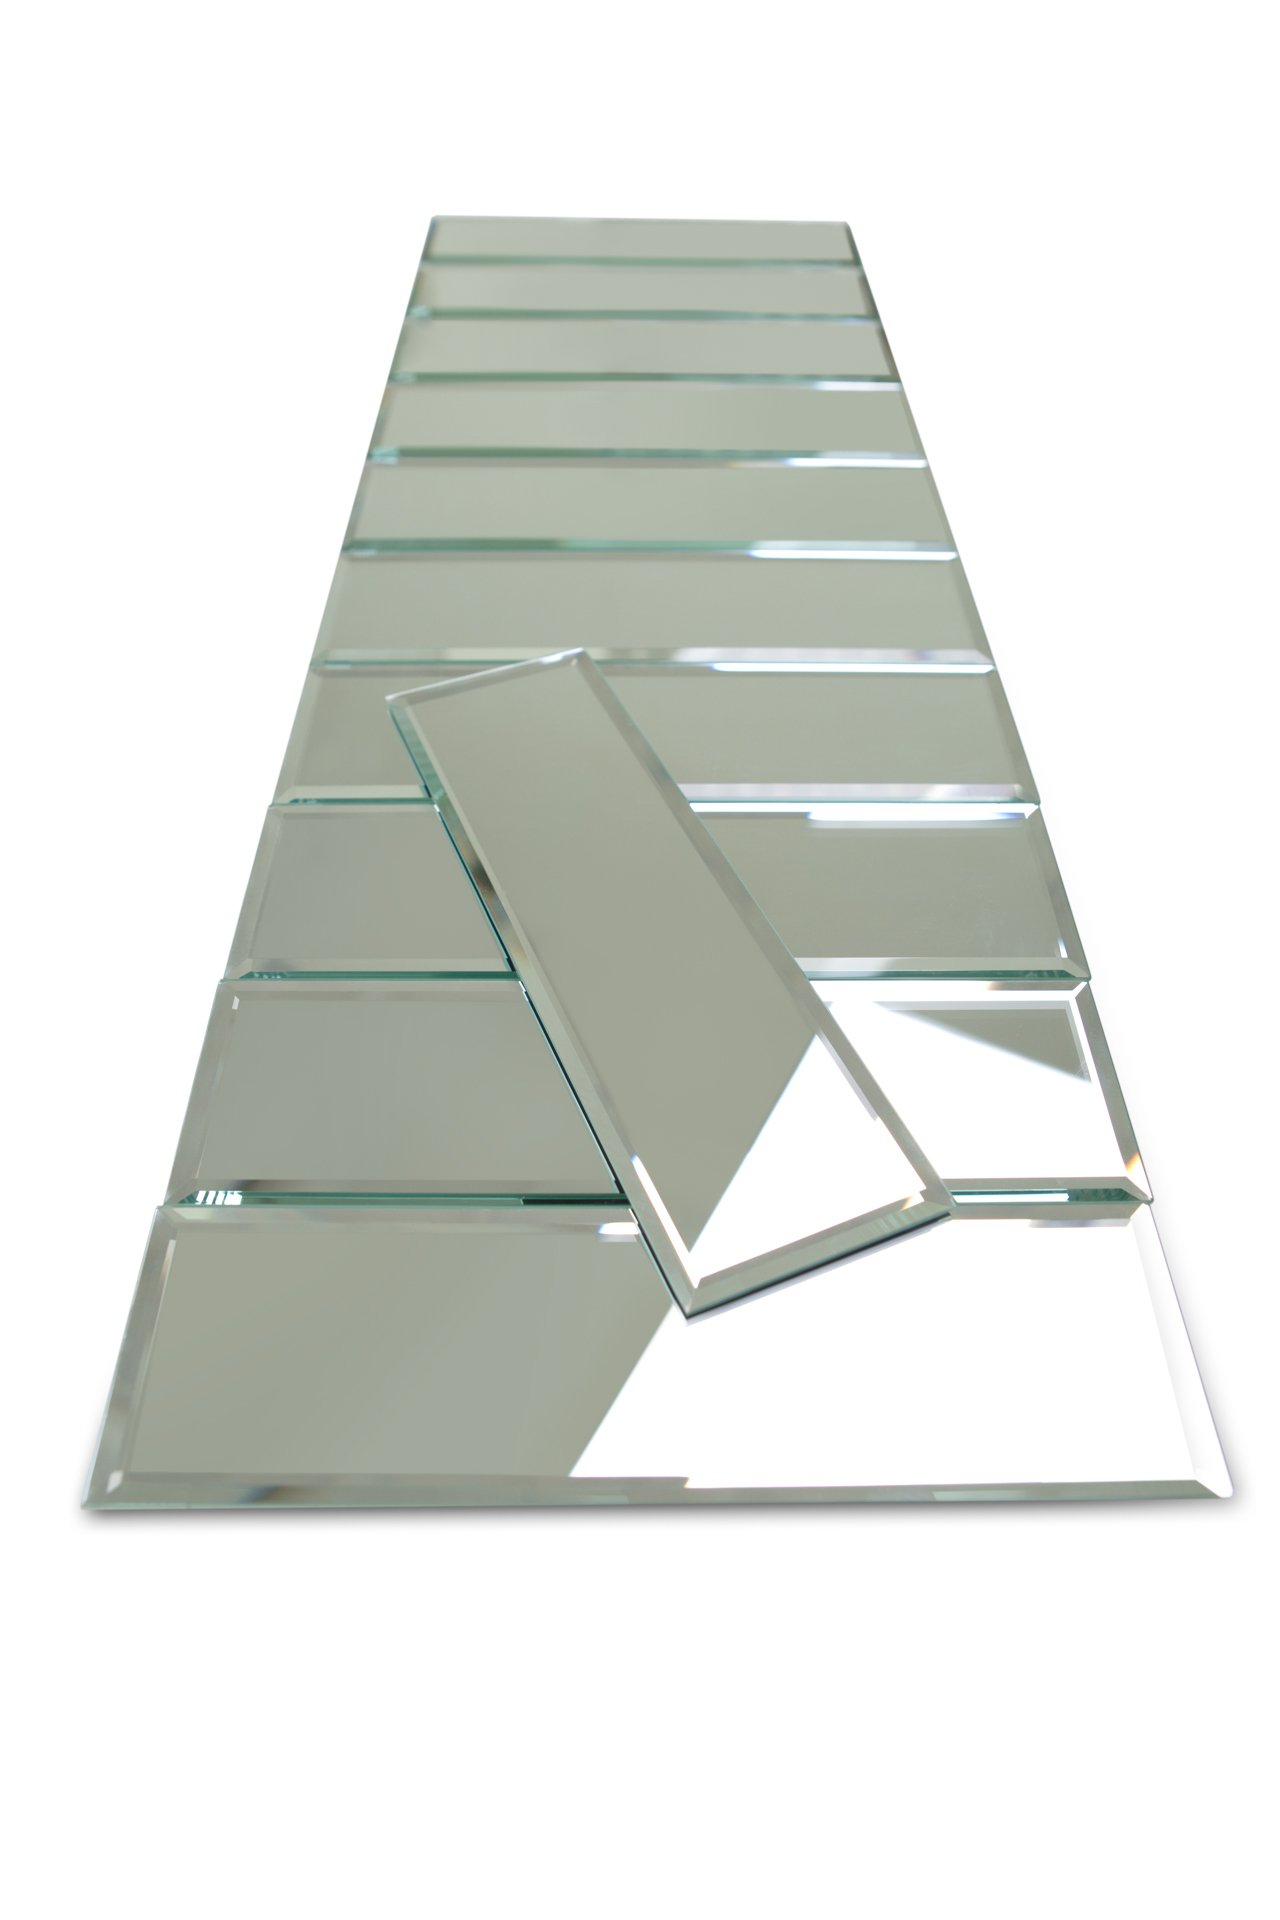 3'' x 10'' Beveled Silver Mirror Glass Tile 55 Pieces Per Box (10sq/ft)